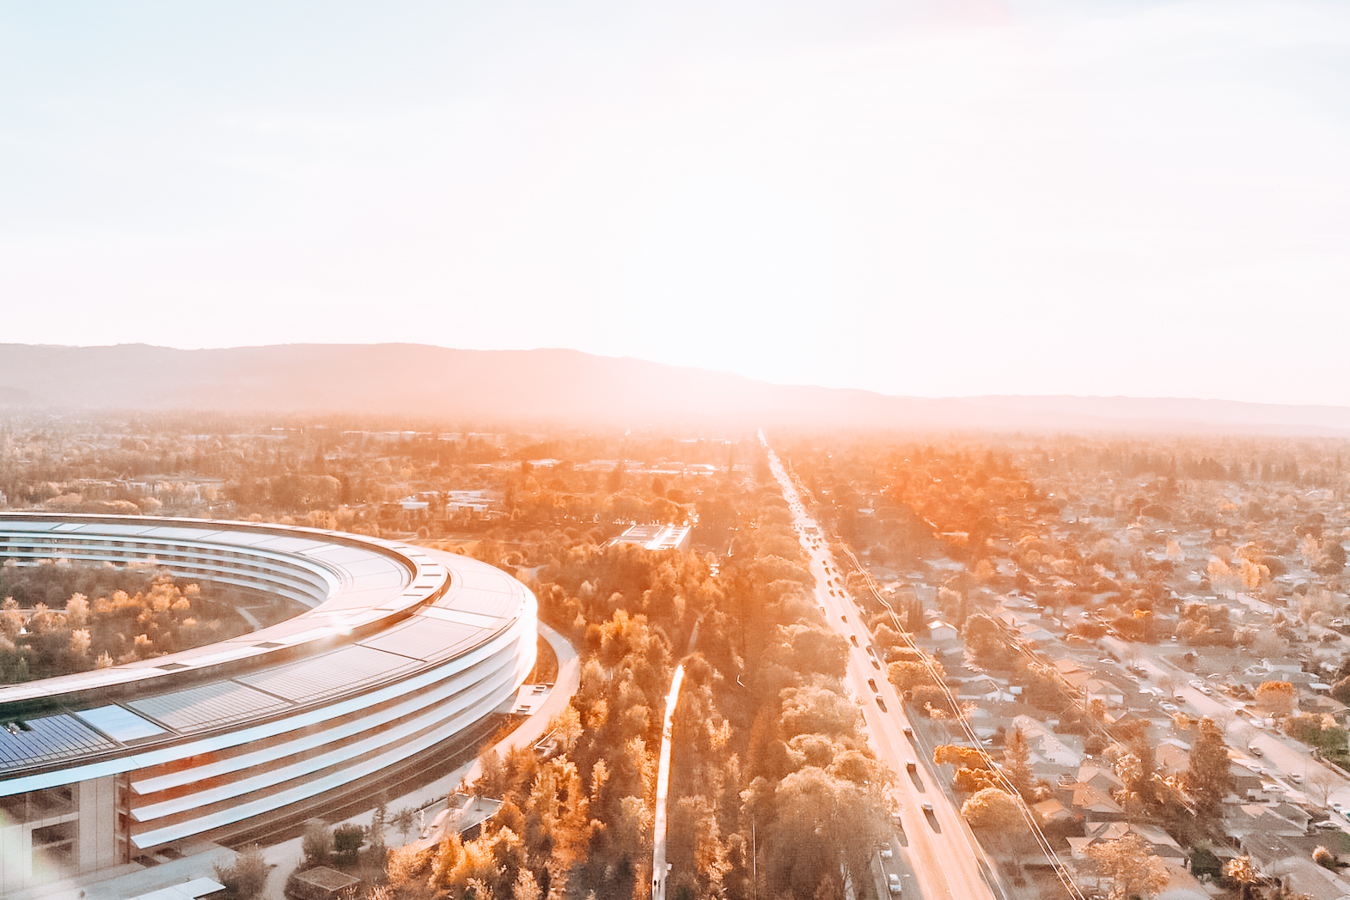 Apple Park from above